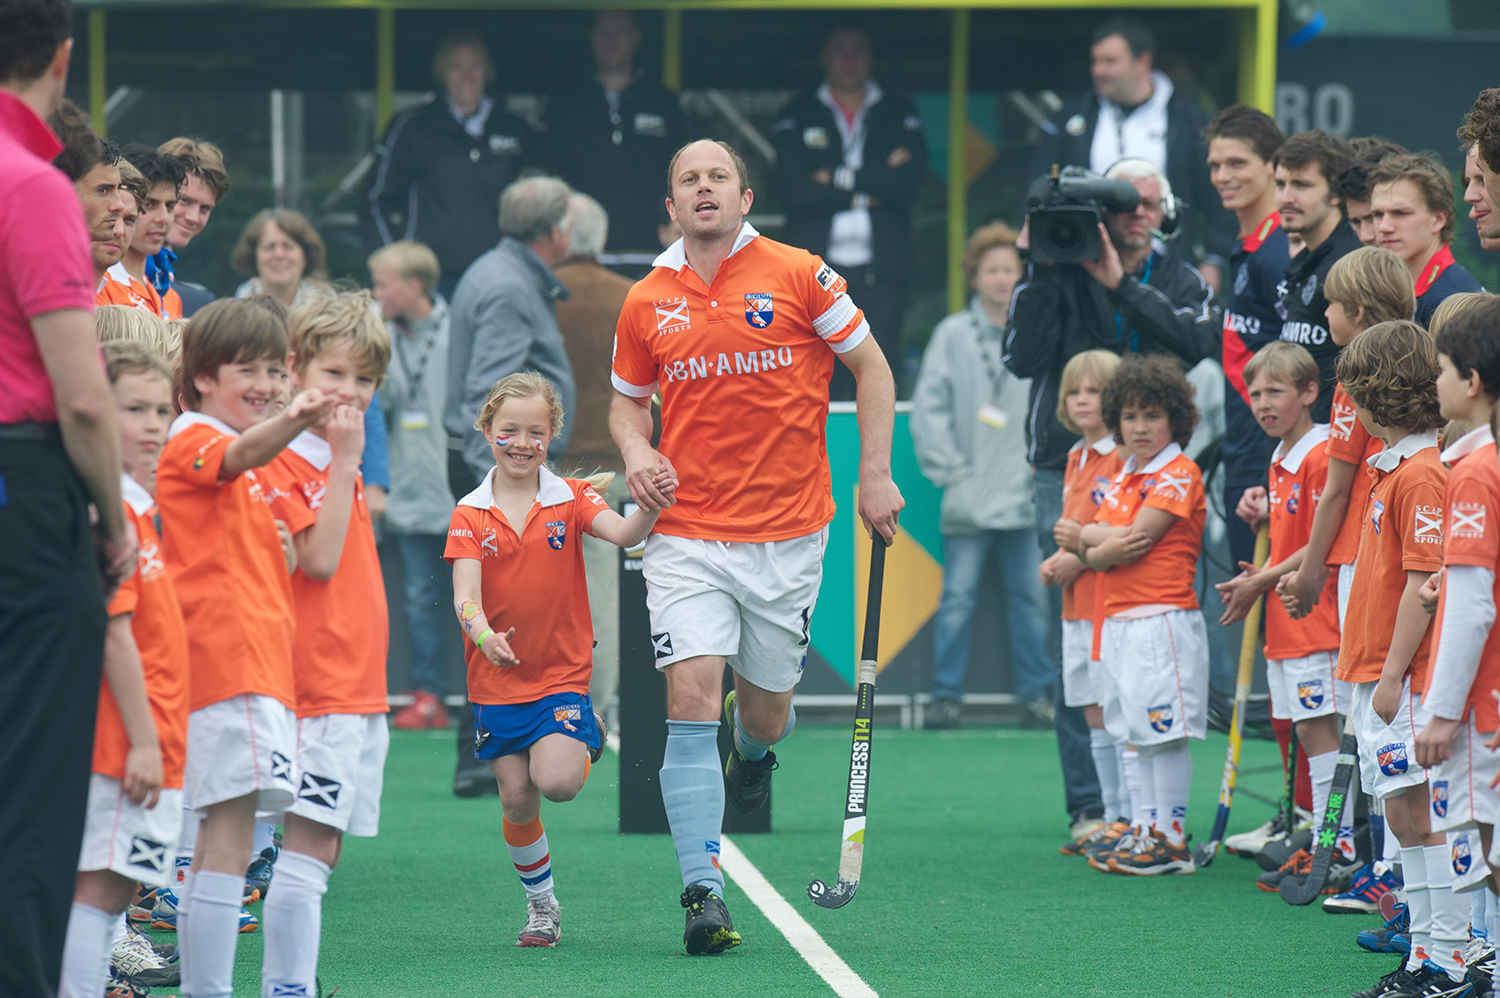 Dutch hockey legend selected as role model for Youth Olympic Games